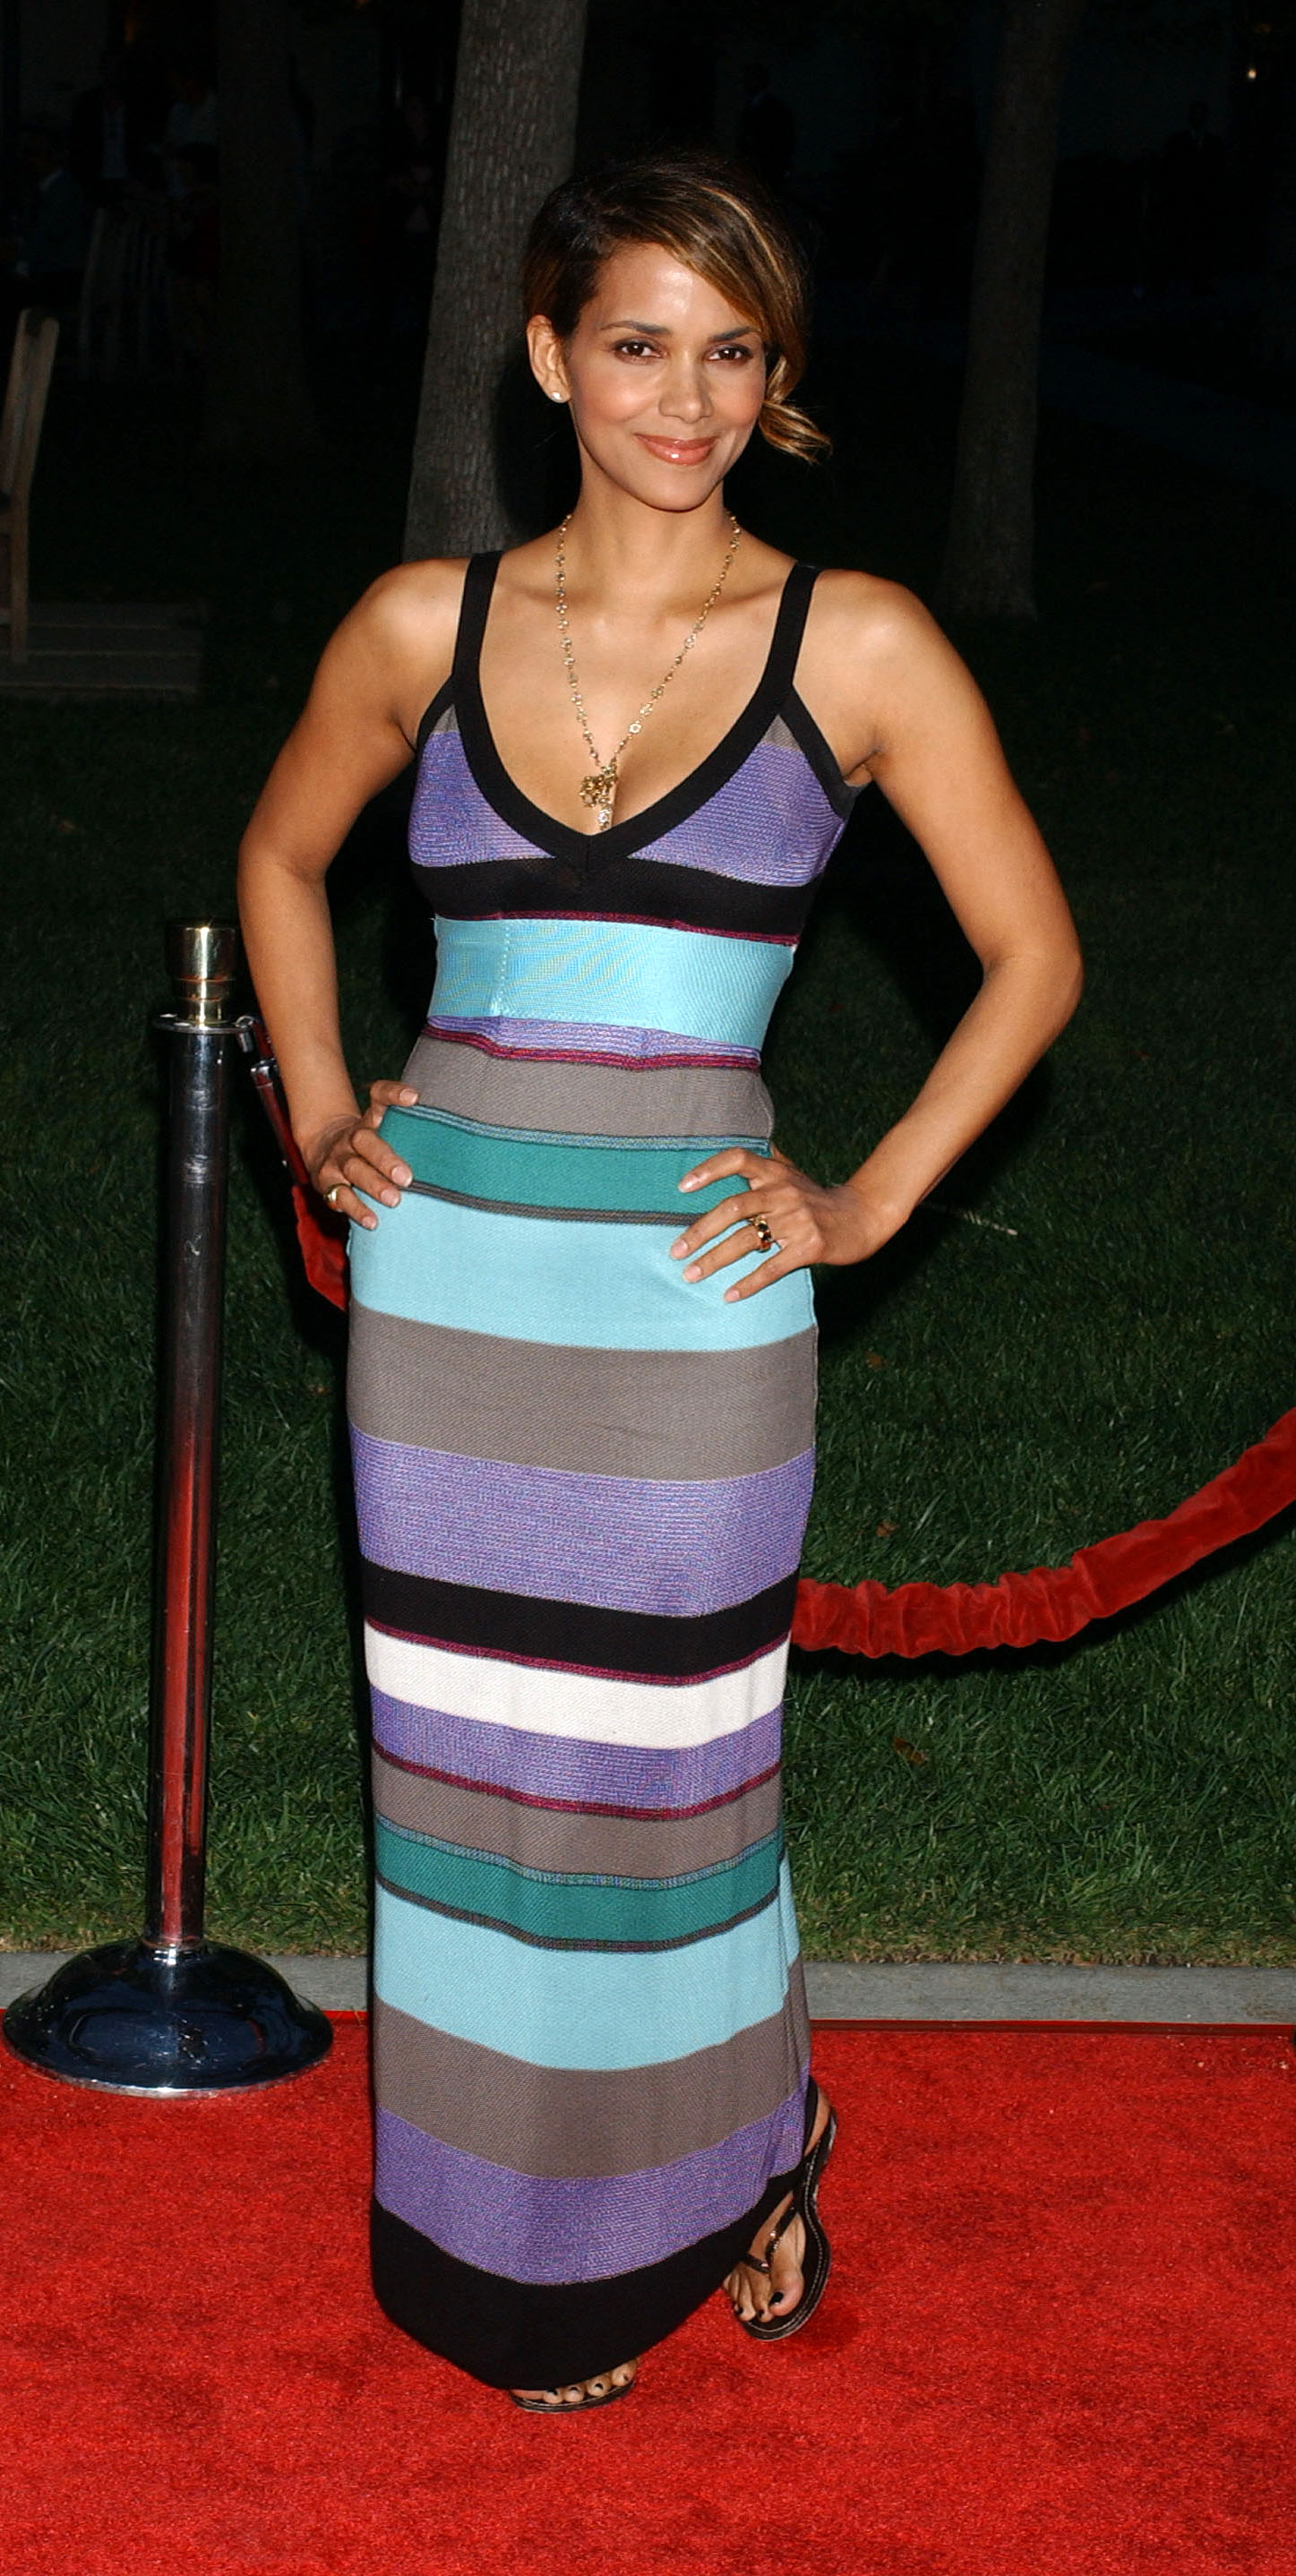 65736_Halle_Berry_The_Soloist_premiere_in_Los_Angeles_49_122_462lo.jpg